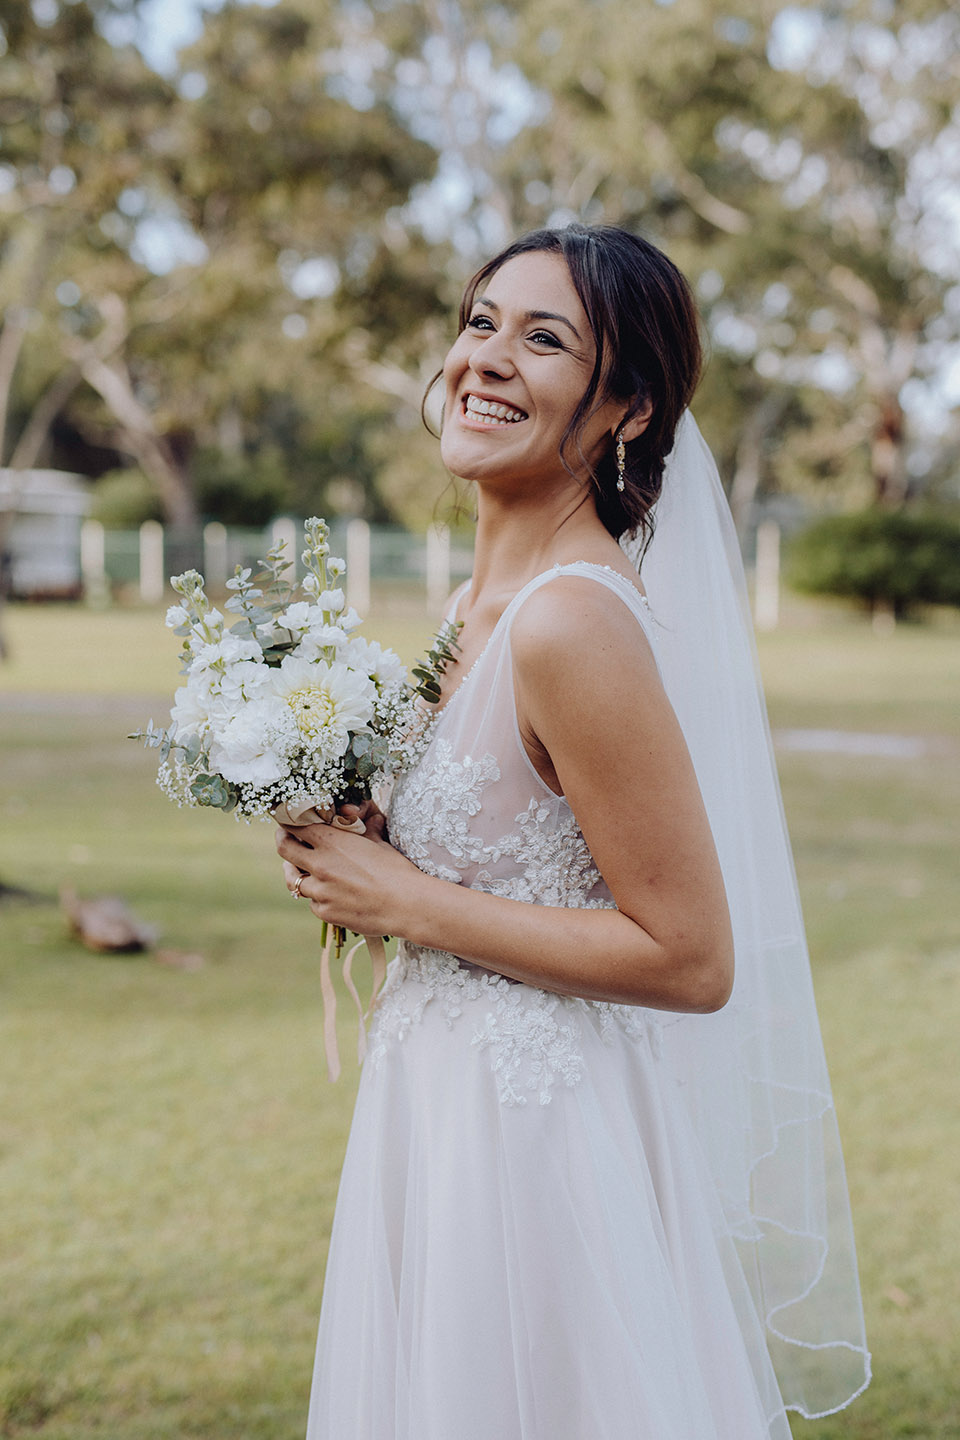 Bride, wedding, wedding dress, bouquet, wedding day, wedding photography, Alice Payne photography, mid north coast photographer